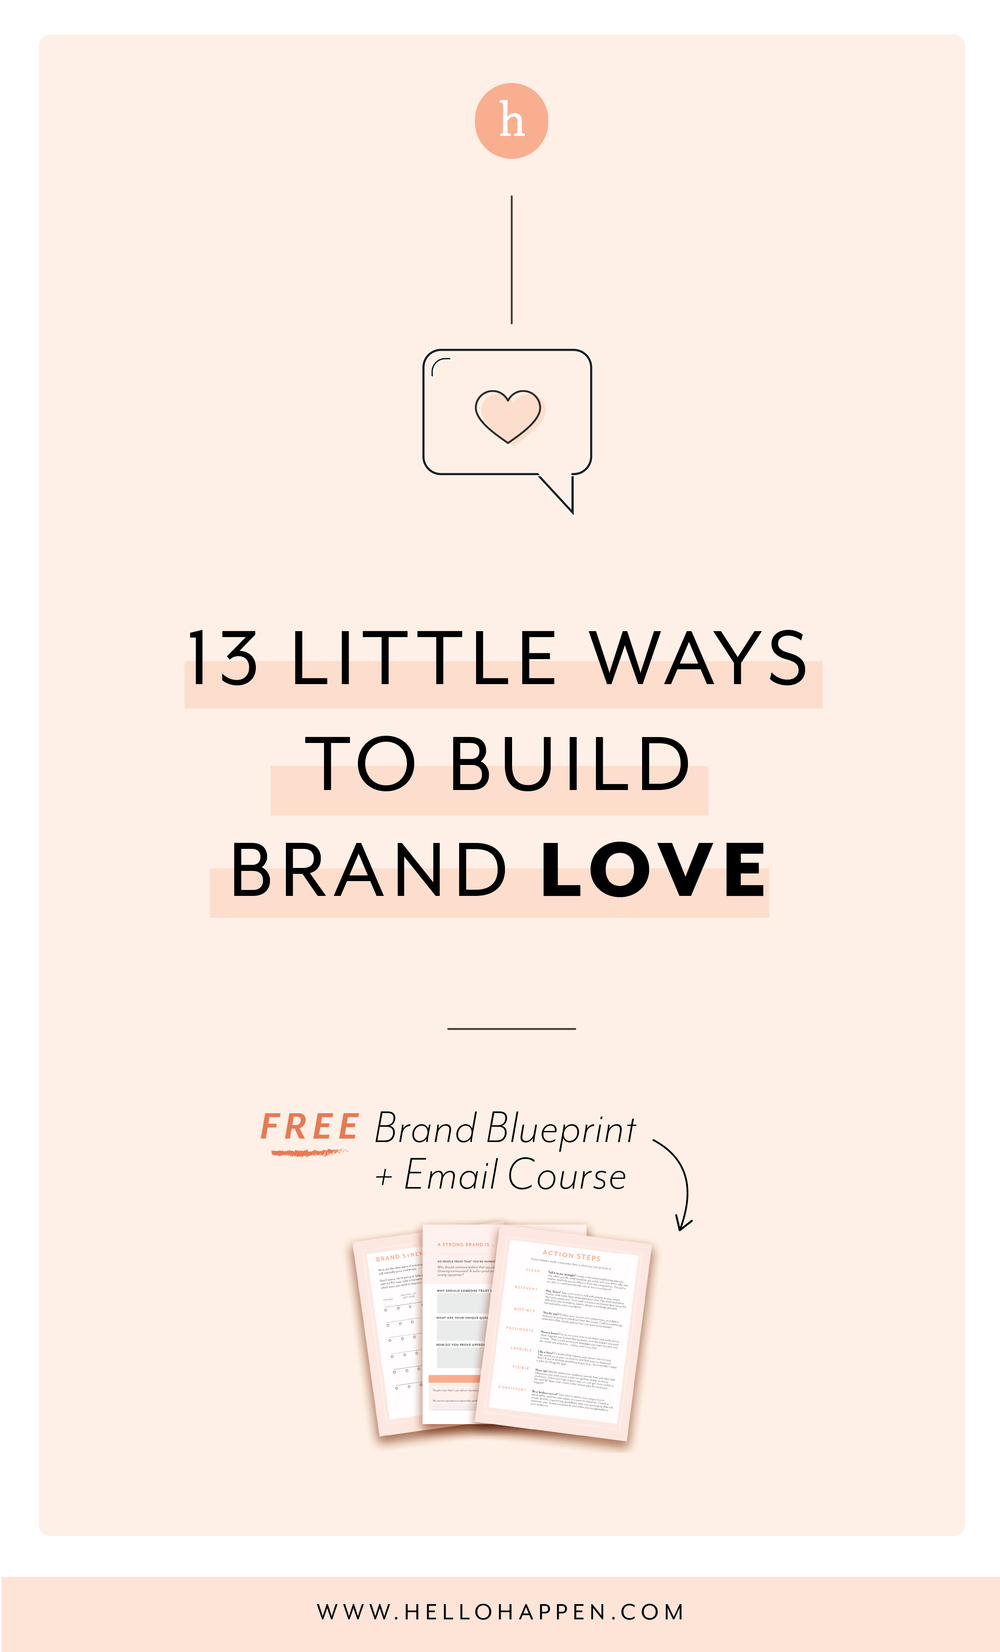 Brand Love - it's all the buzz! Here are 13 little ways to build it today. Read the post, plus download the free Brand Blueprint + email course. #brandstrategy // Hellohappen Brand Strategy